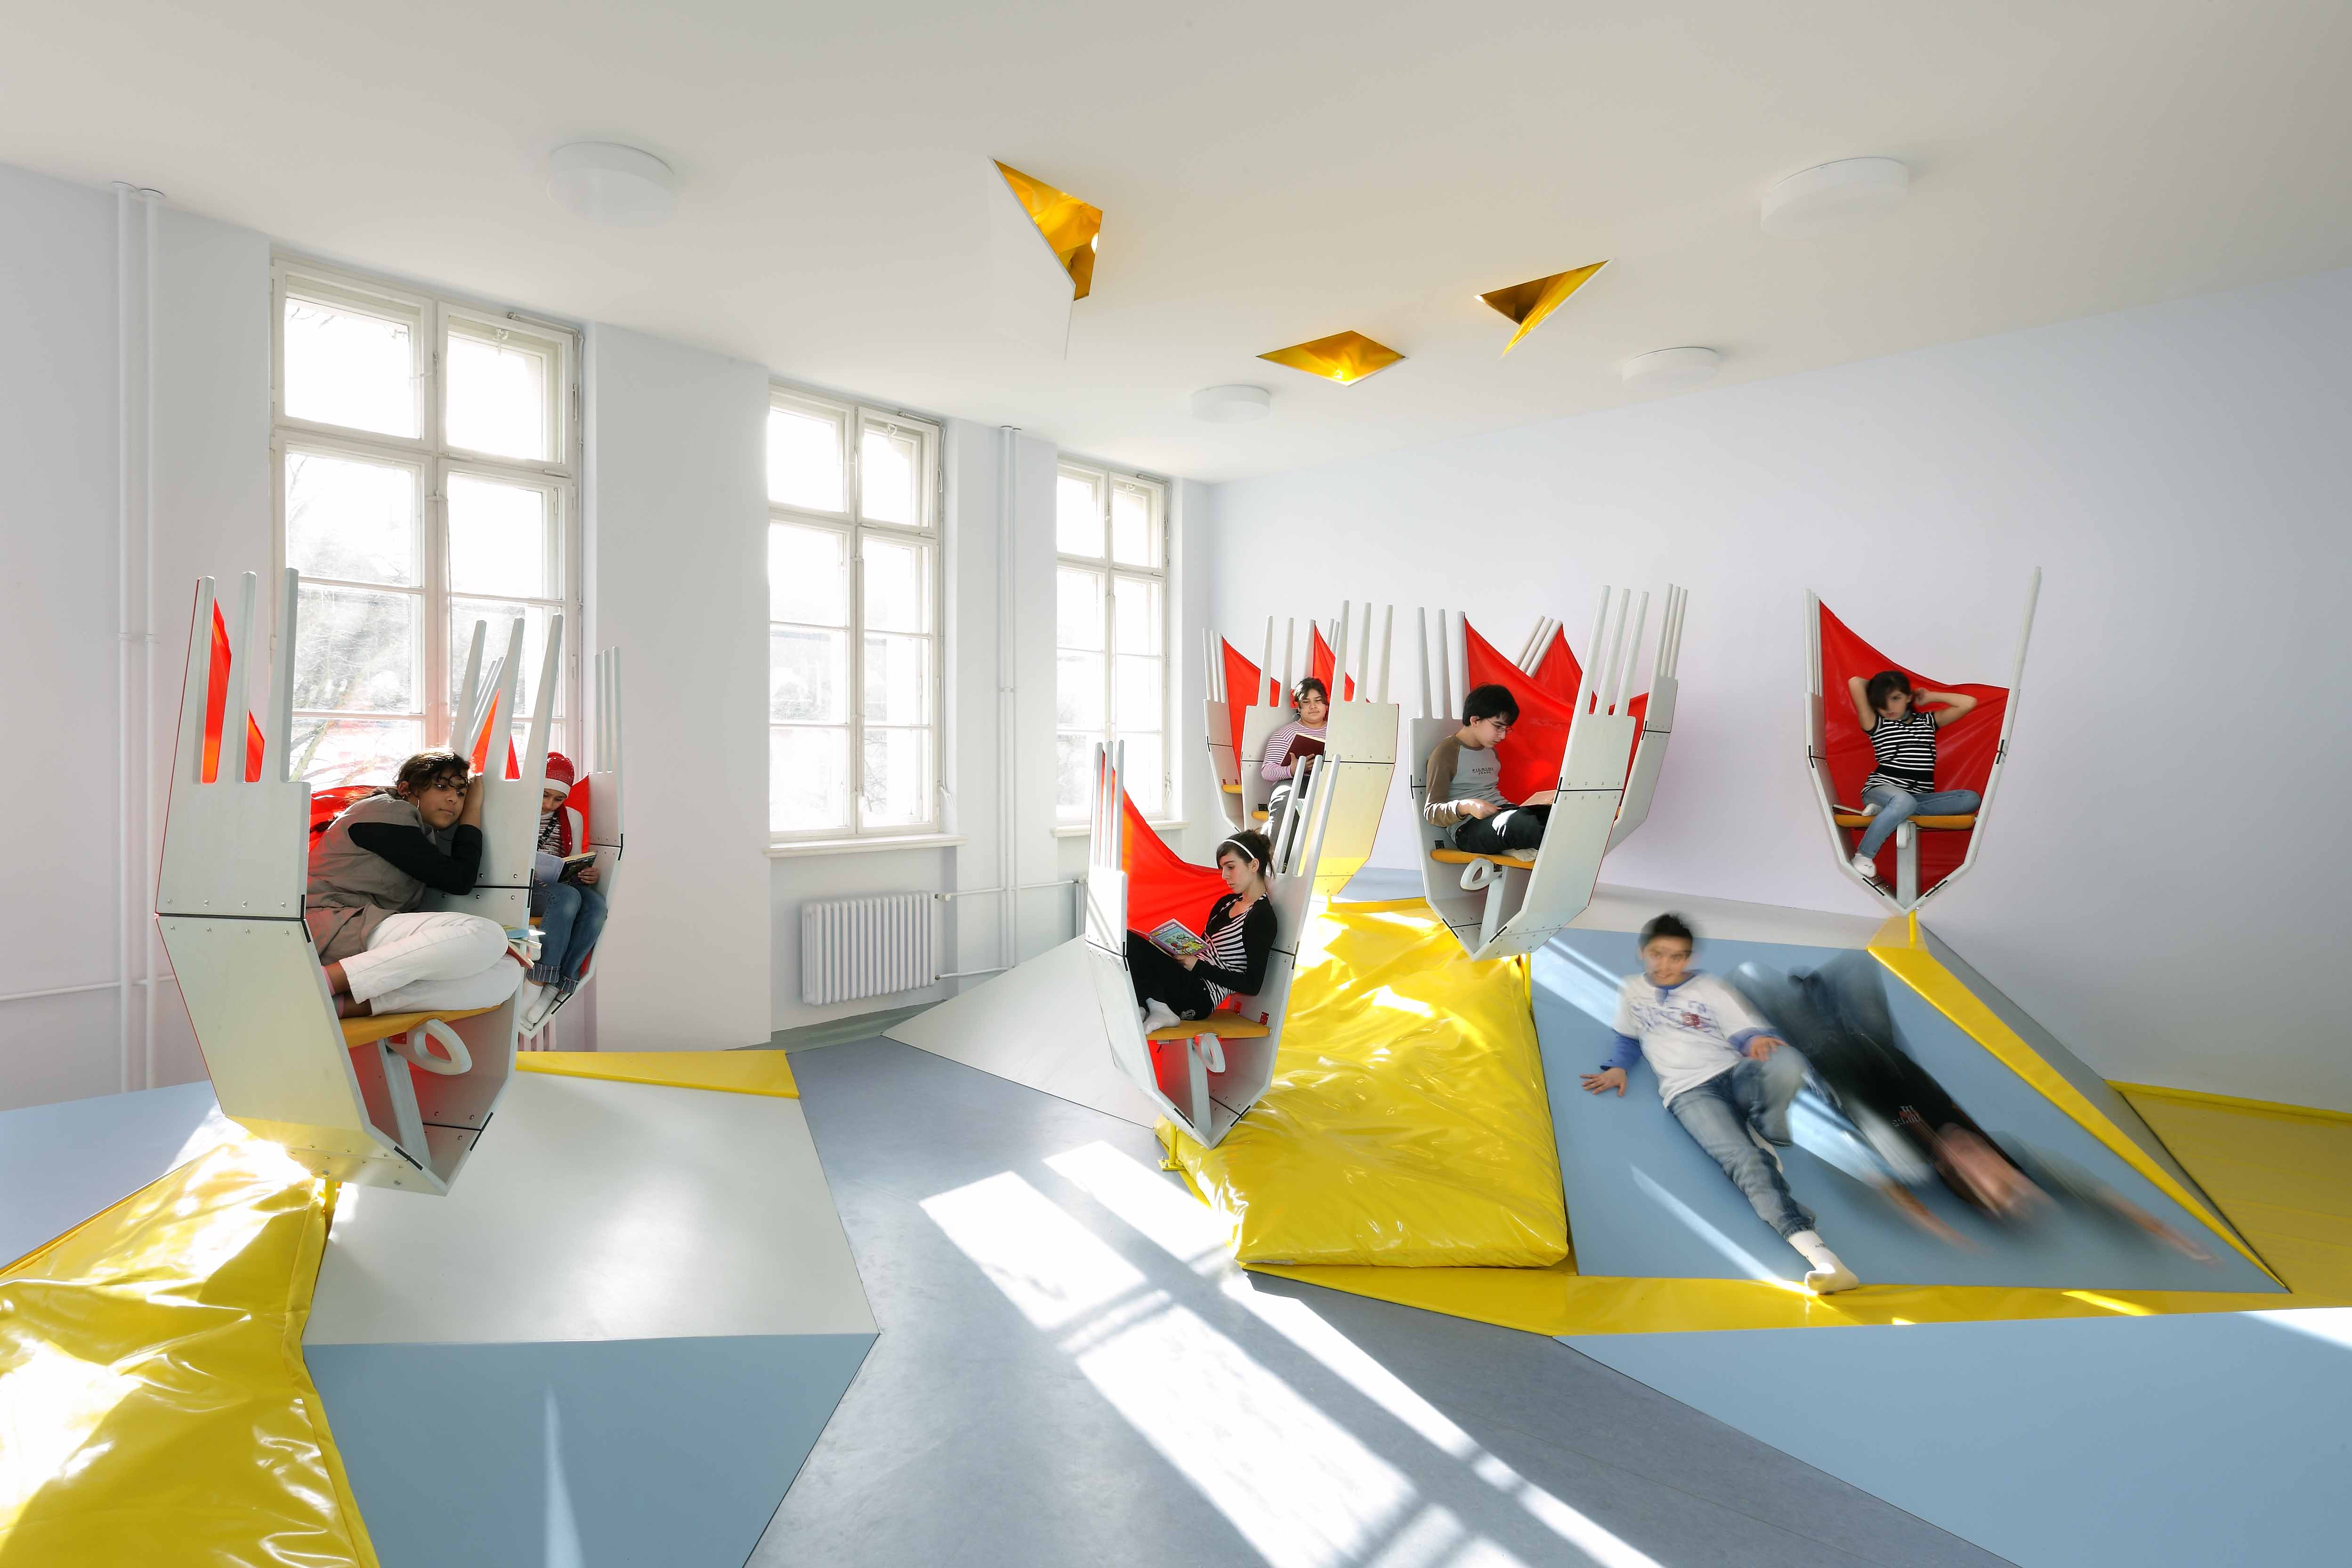 Erika mann school phase 2 live projects network - Top interior design schools in the us ...